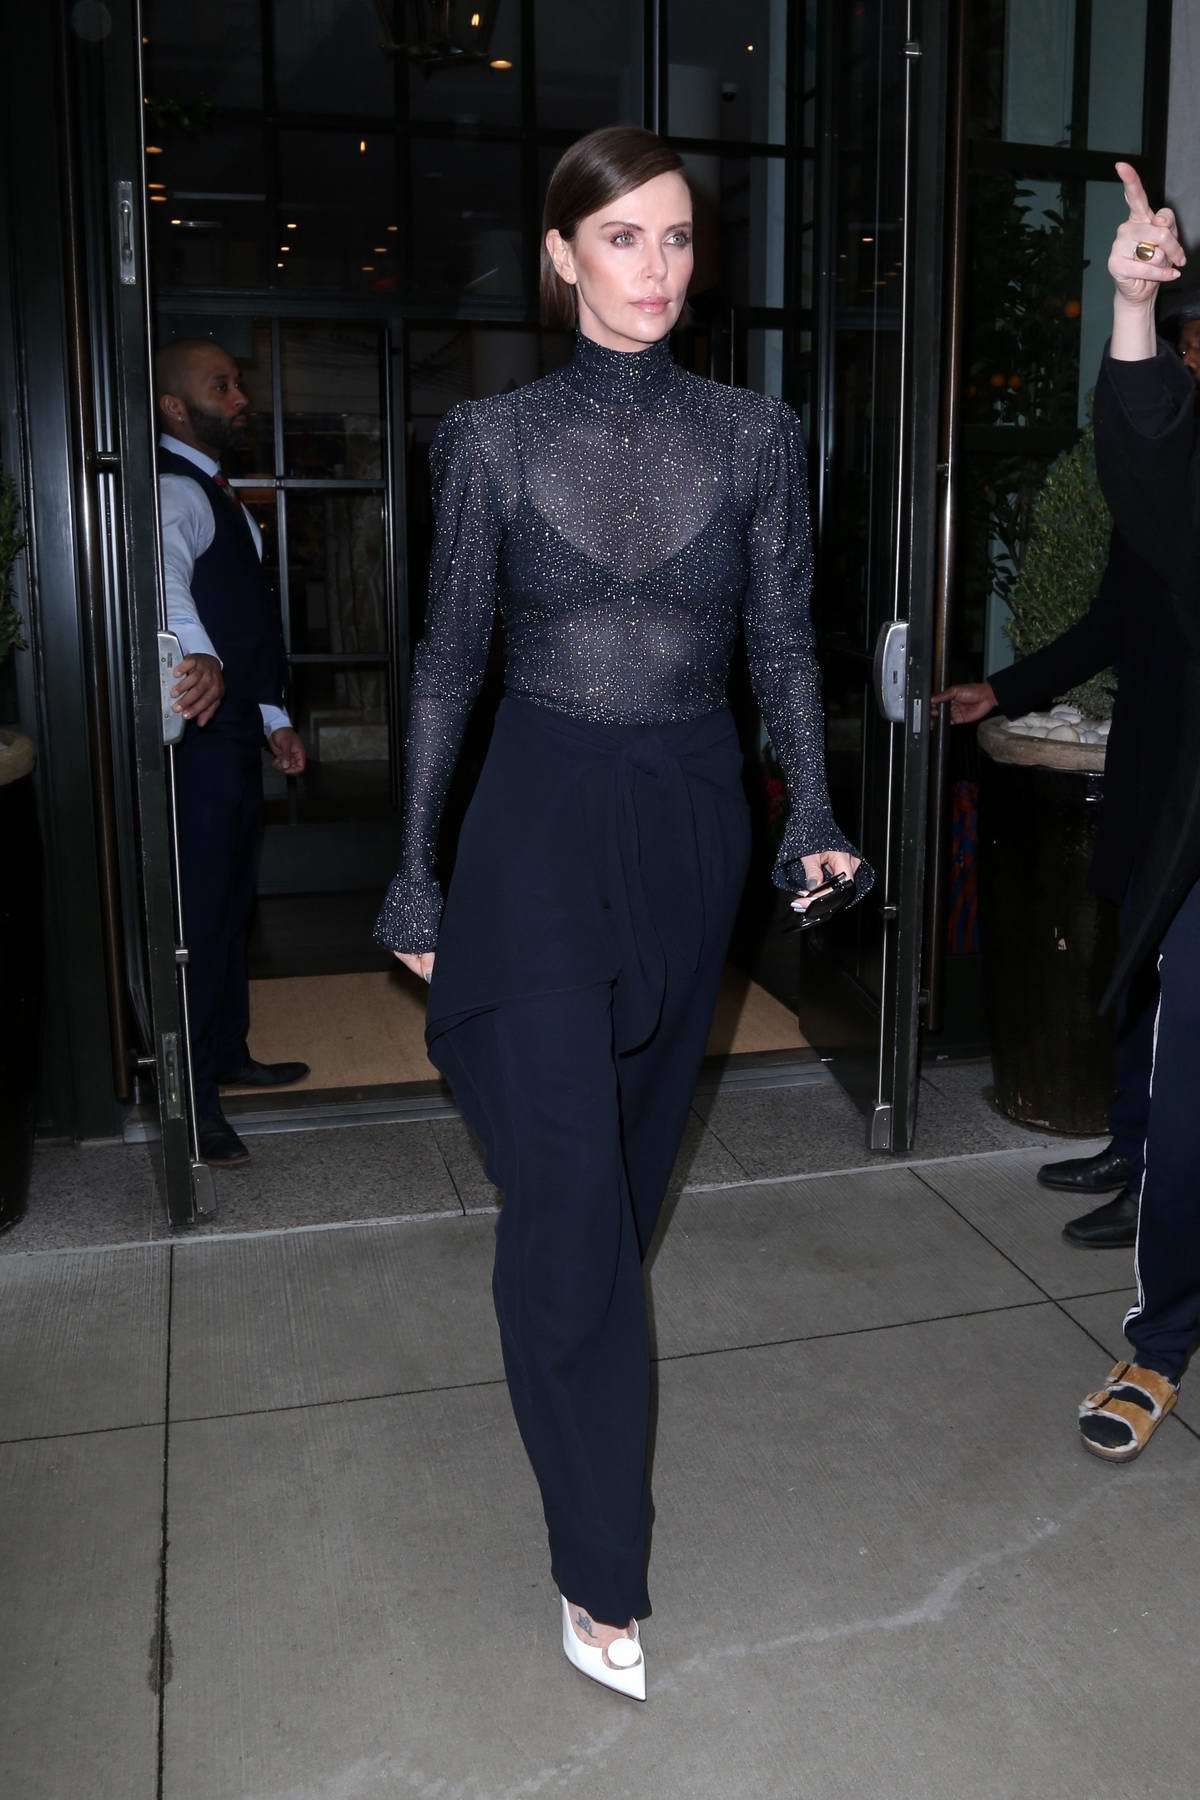 Charlize Theron looks stylish in a navy blue attire while out to promote her new movie 'Long Shot' in New York City